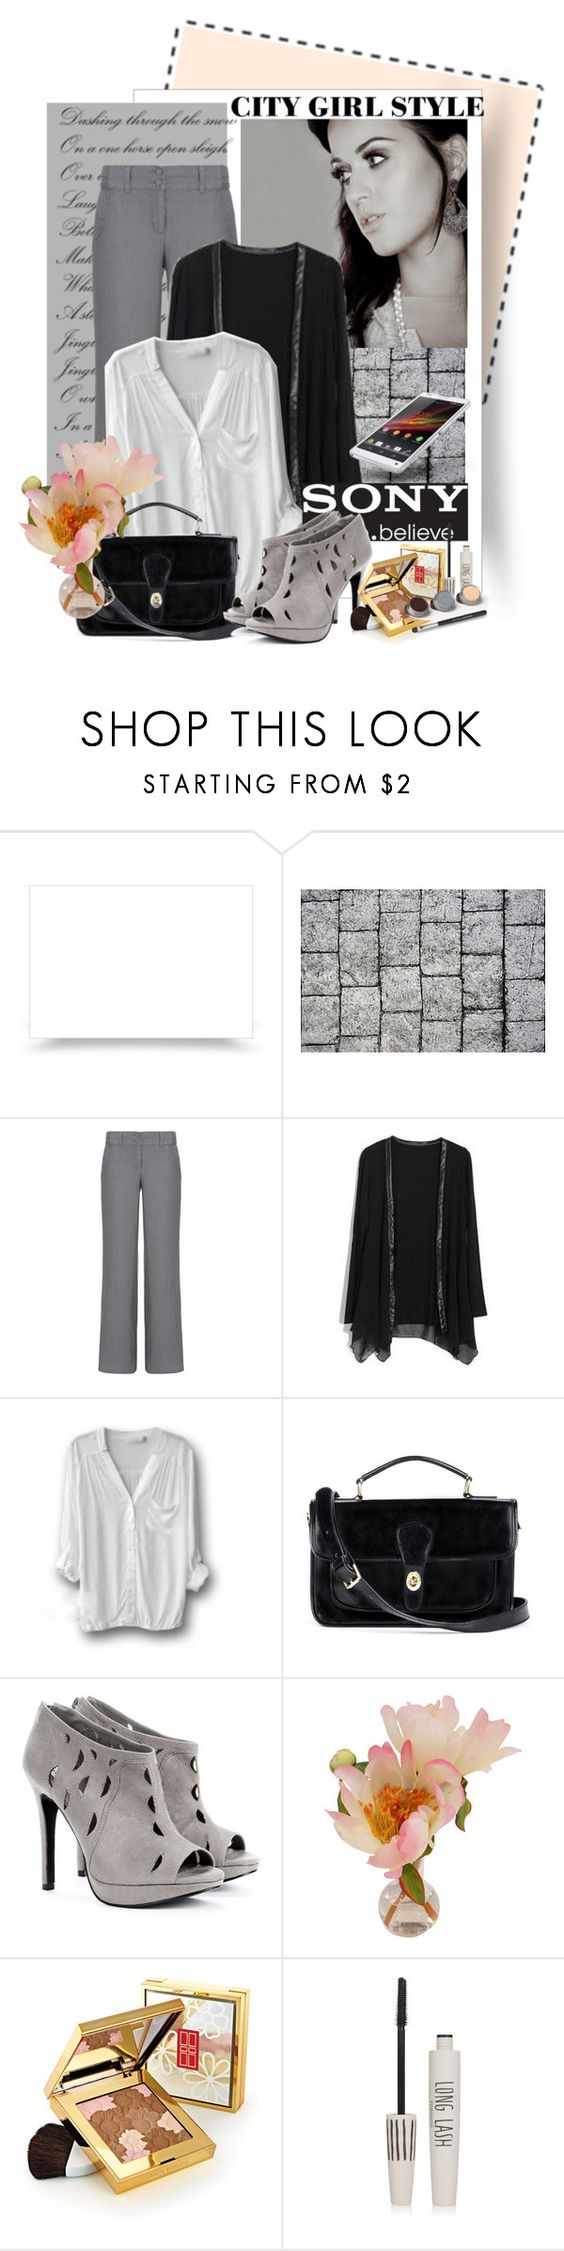 """Sony Xperia"" by polybaby ❤ liked on Polyvore featuring Monsoon, Retrò, Sony, Sole Society, Elizabeth Arden, Topshop and Bare Escentuals"